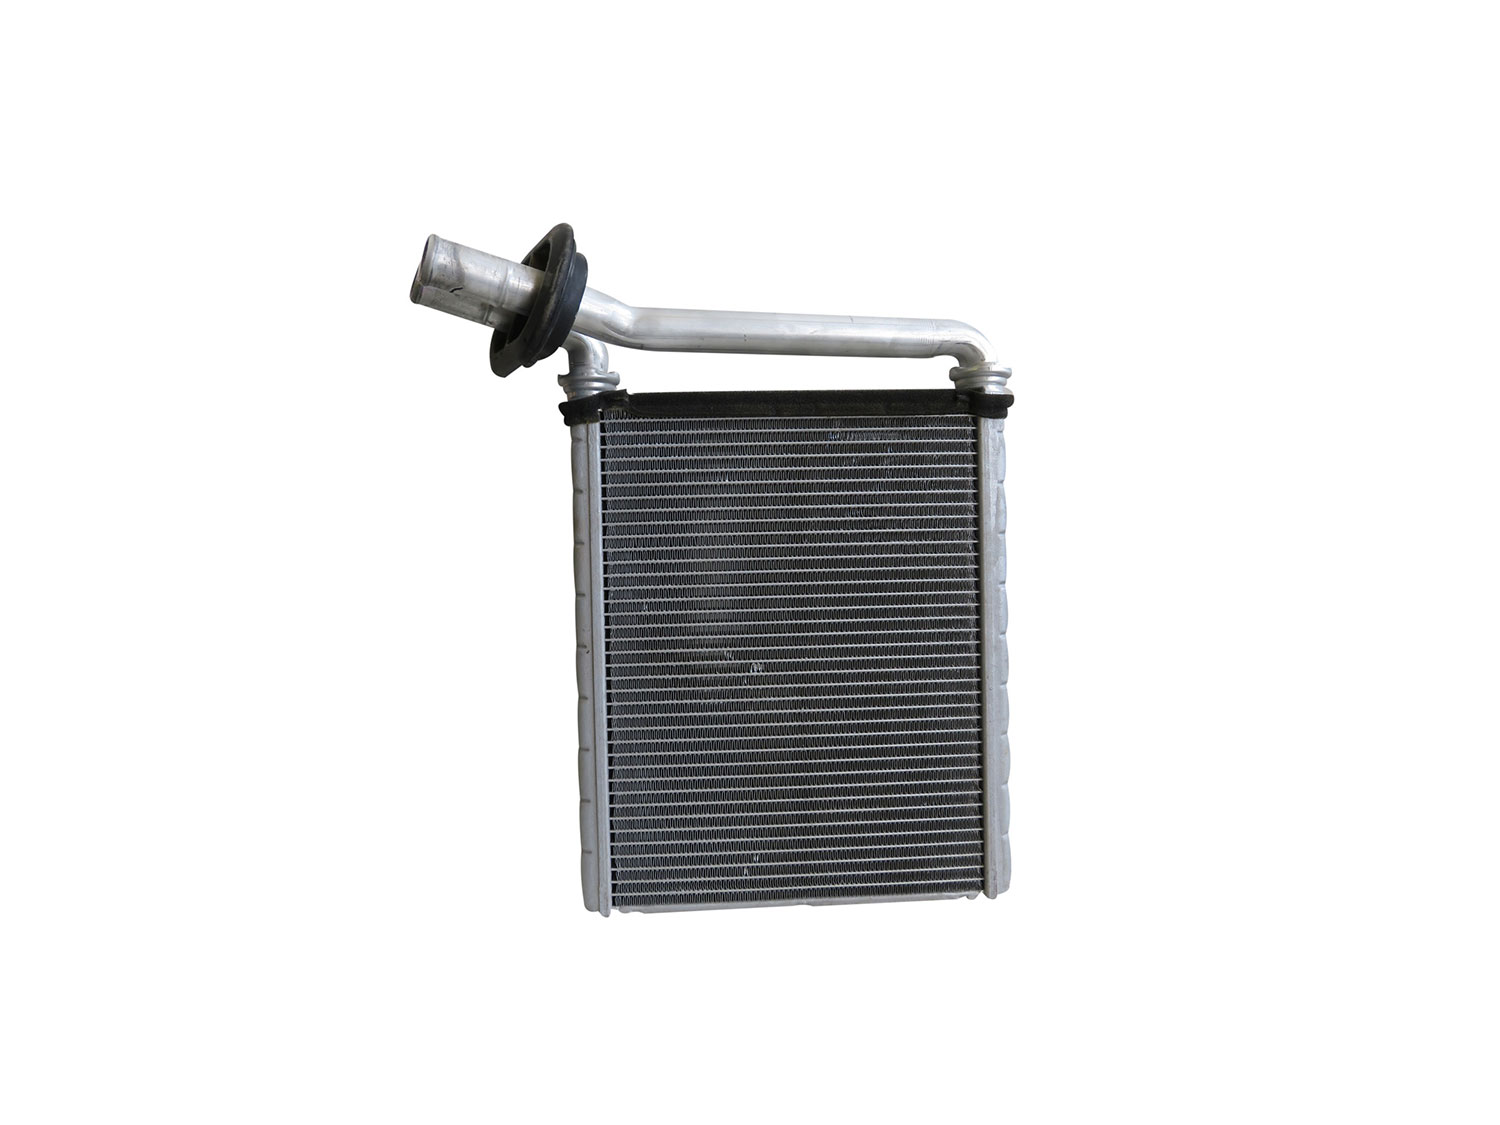 Suppliers Of Quality Used Toyota Quantum Radiator Heaters | Taxi Auto Parts